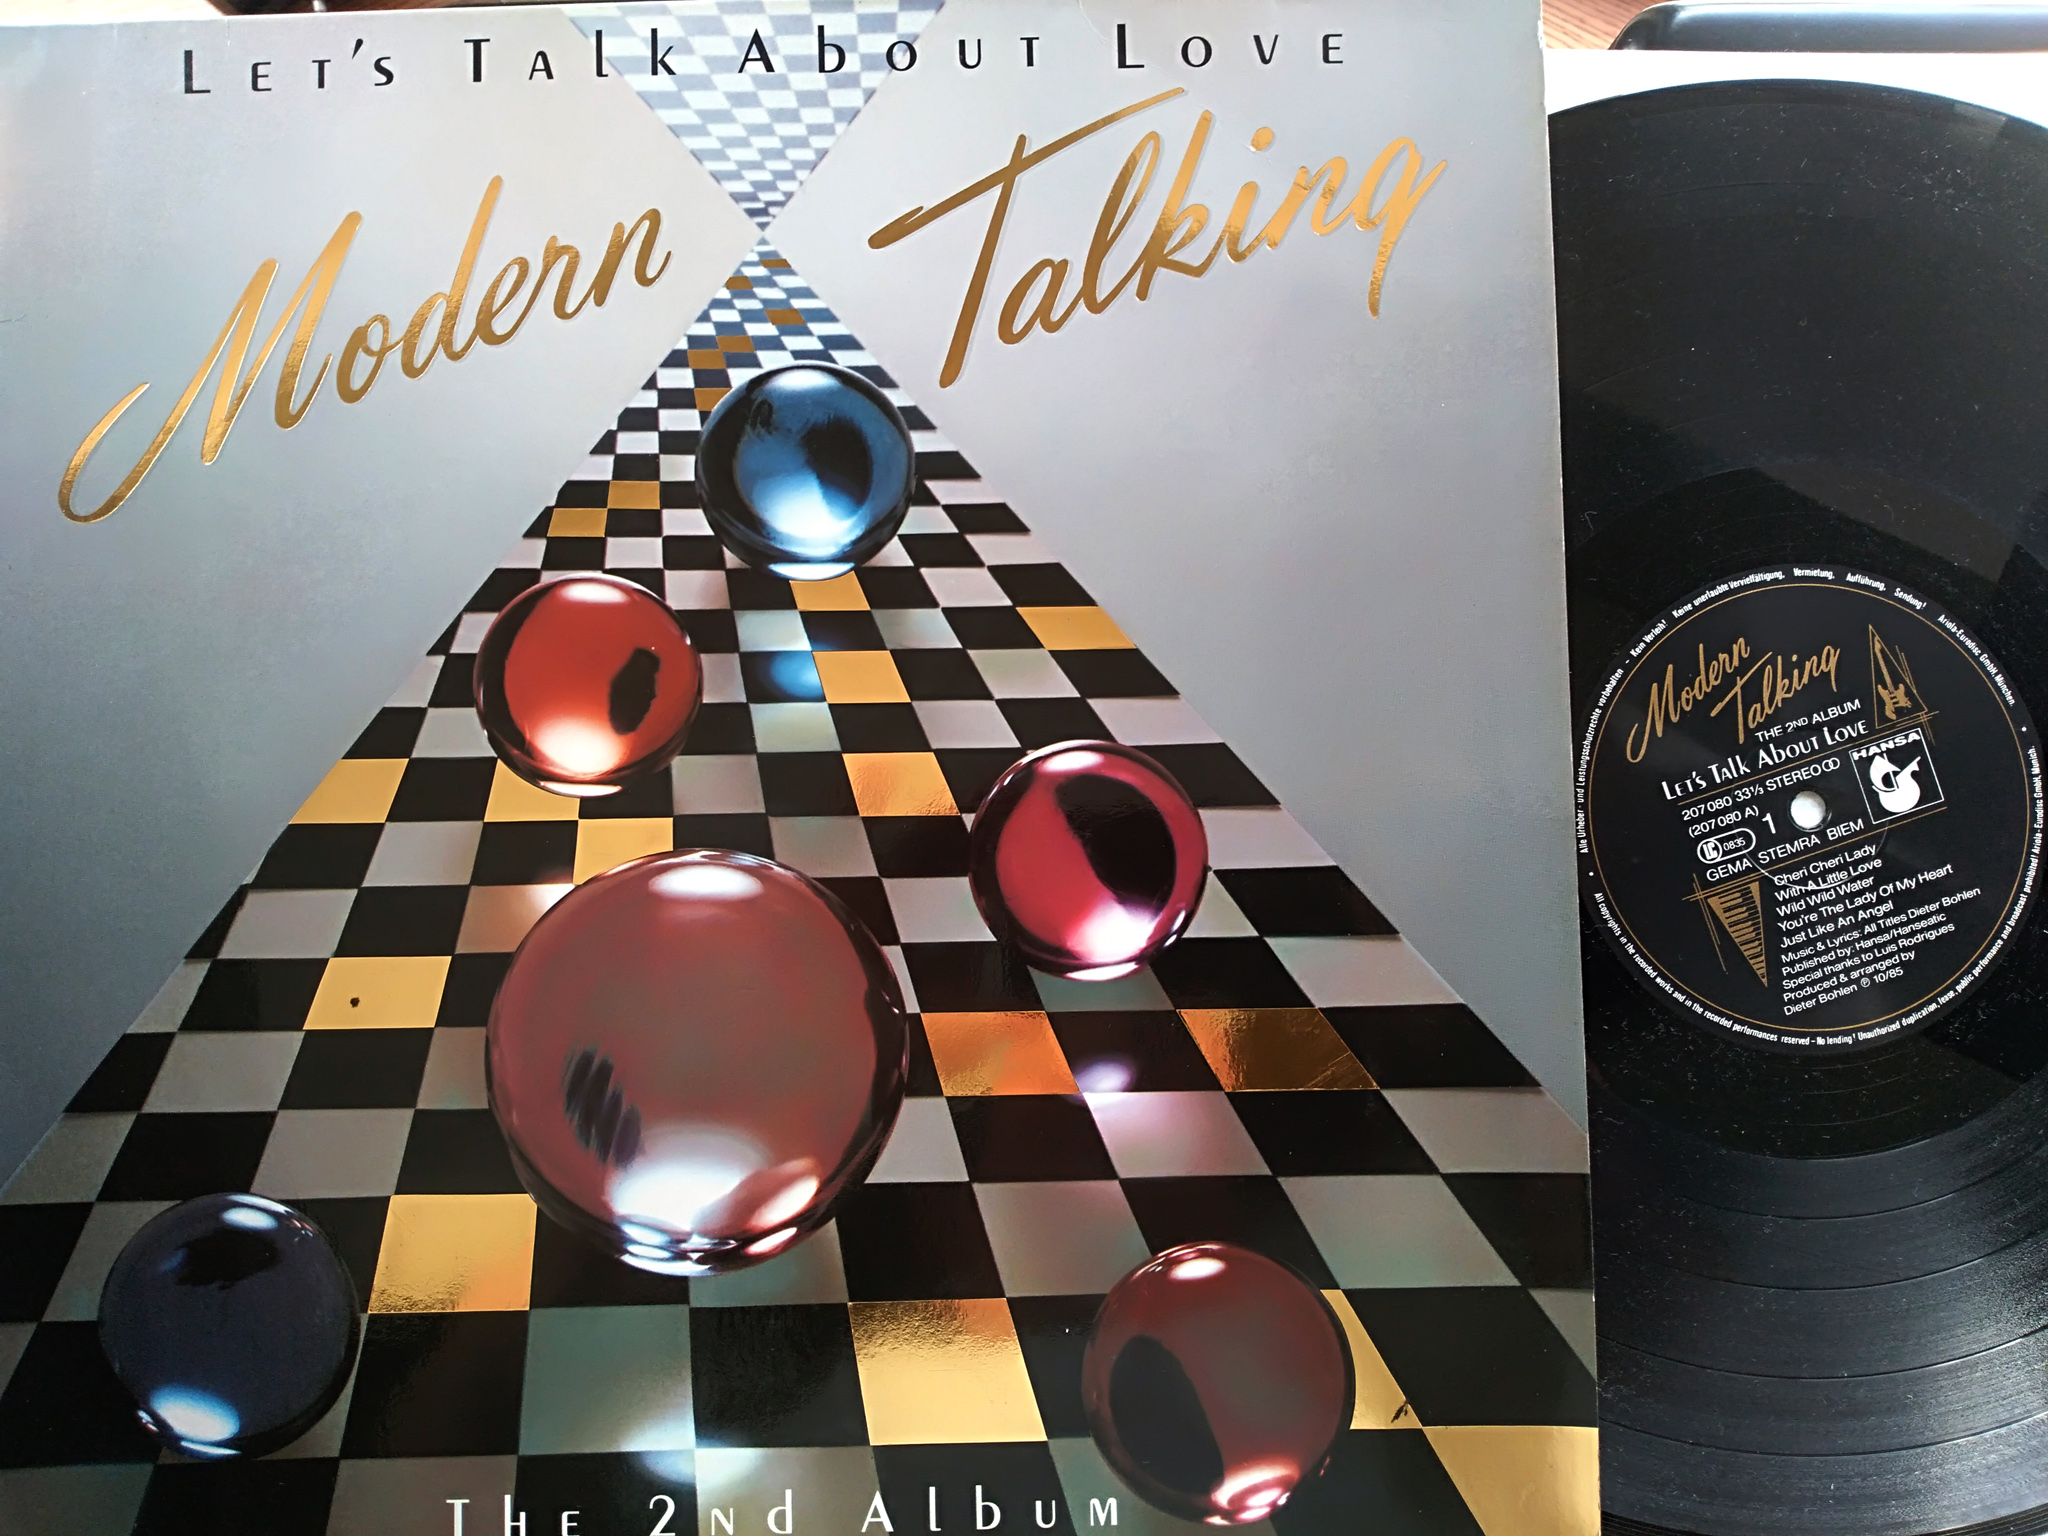 Modern Talking - Let's Talk About Love 2album